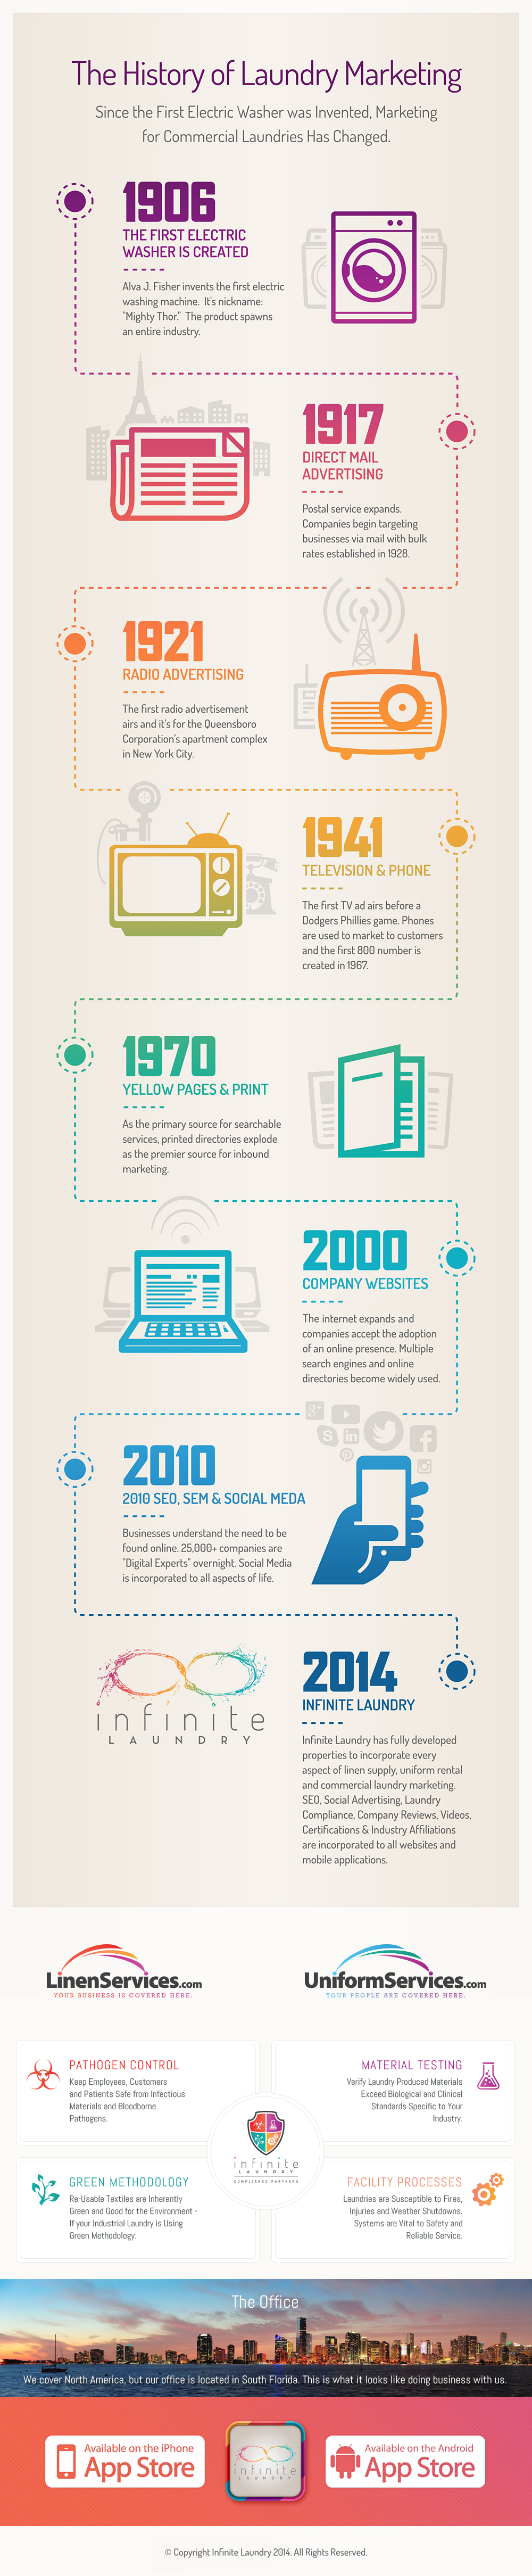 The History of Laundry Marketing Infographic